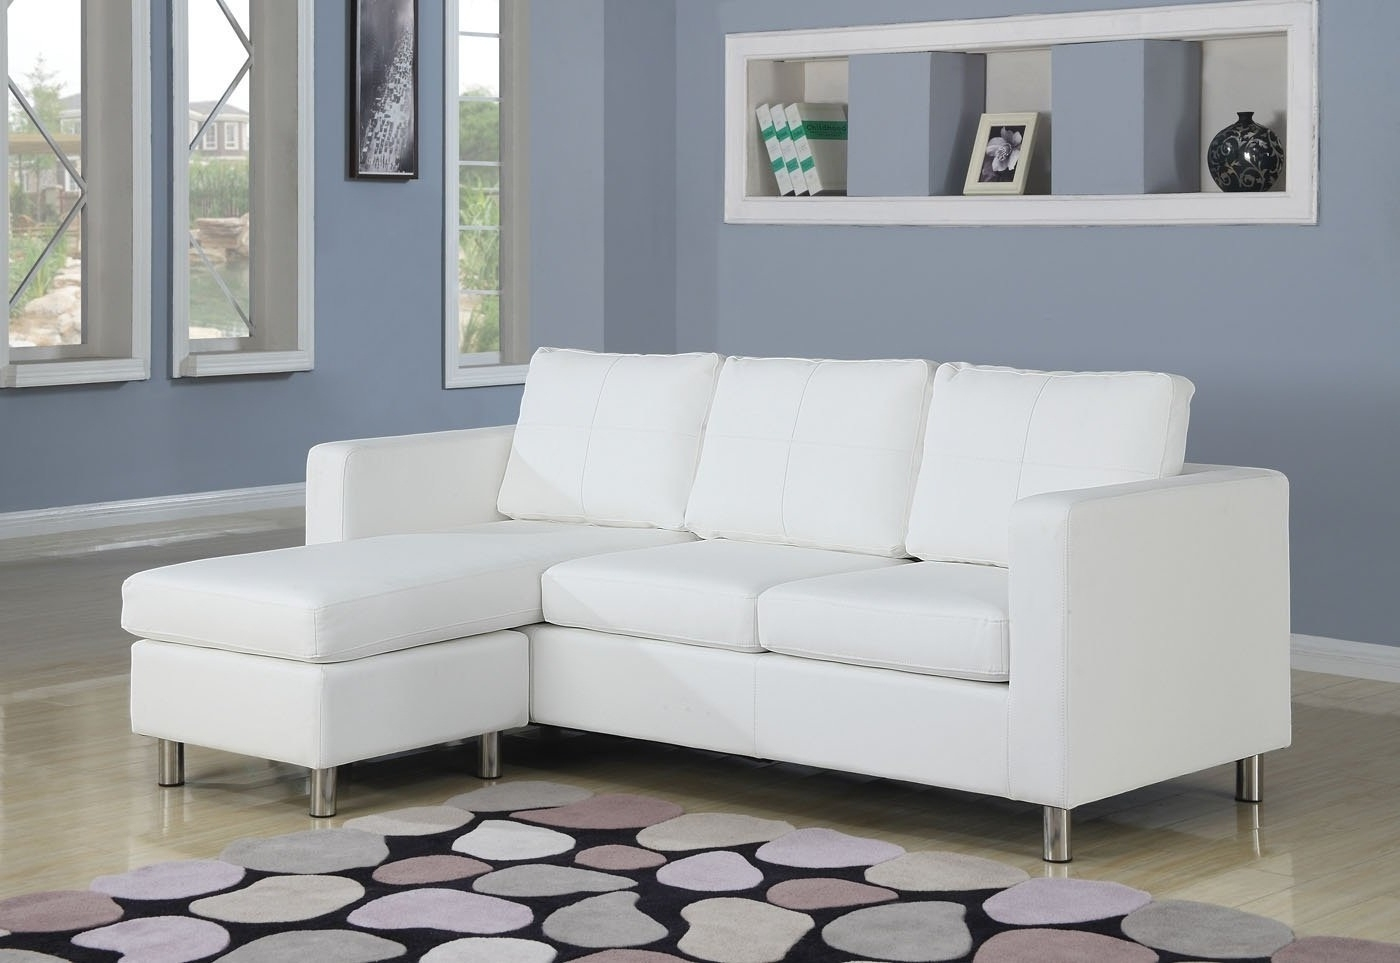 Most Current Sofa : Small Reclining Sectional Sofa Small Double Chaise Sofa Regarding Mini Sectional Sofas (View 8 of 15)